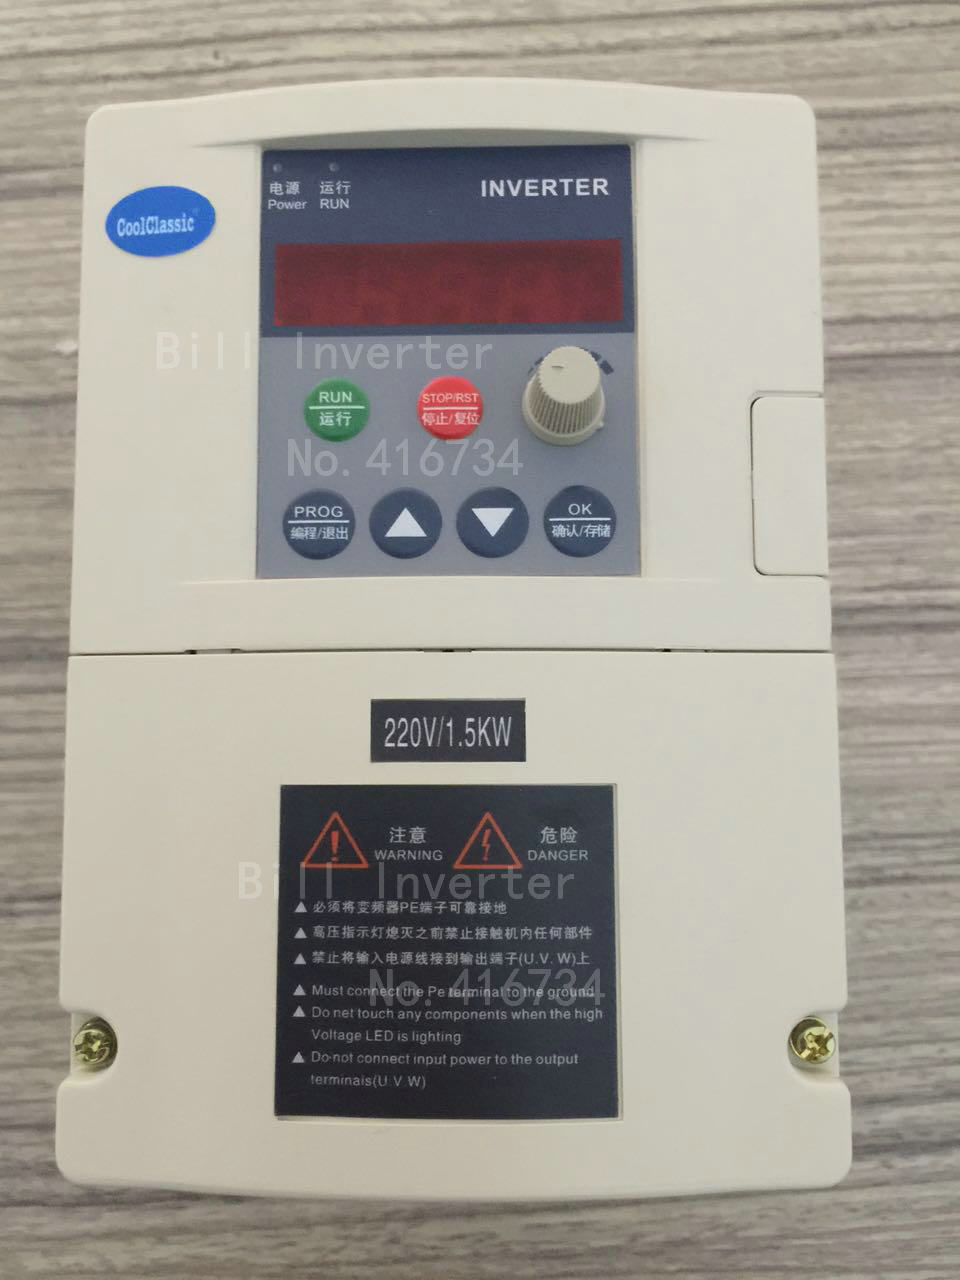 VFD Inverter CoolClassic ZW S2015 Inverter 1500w Single phase 220v input three phase motor without control